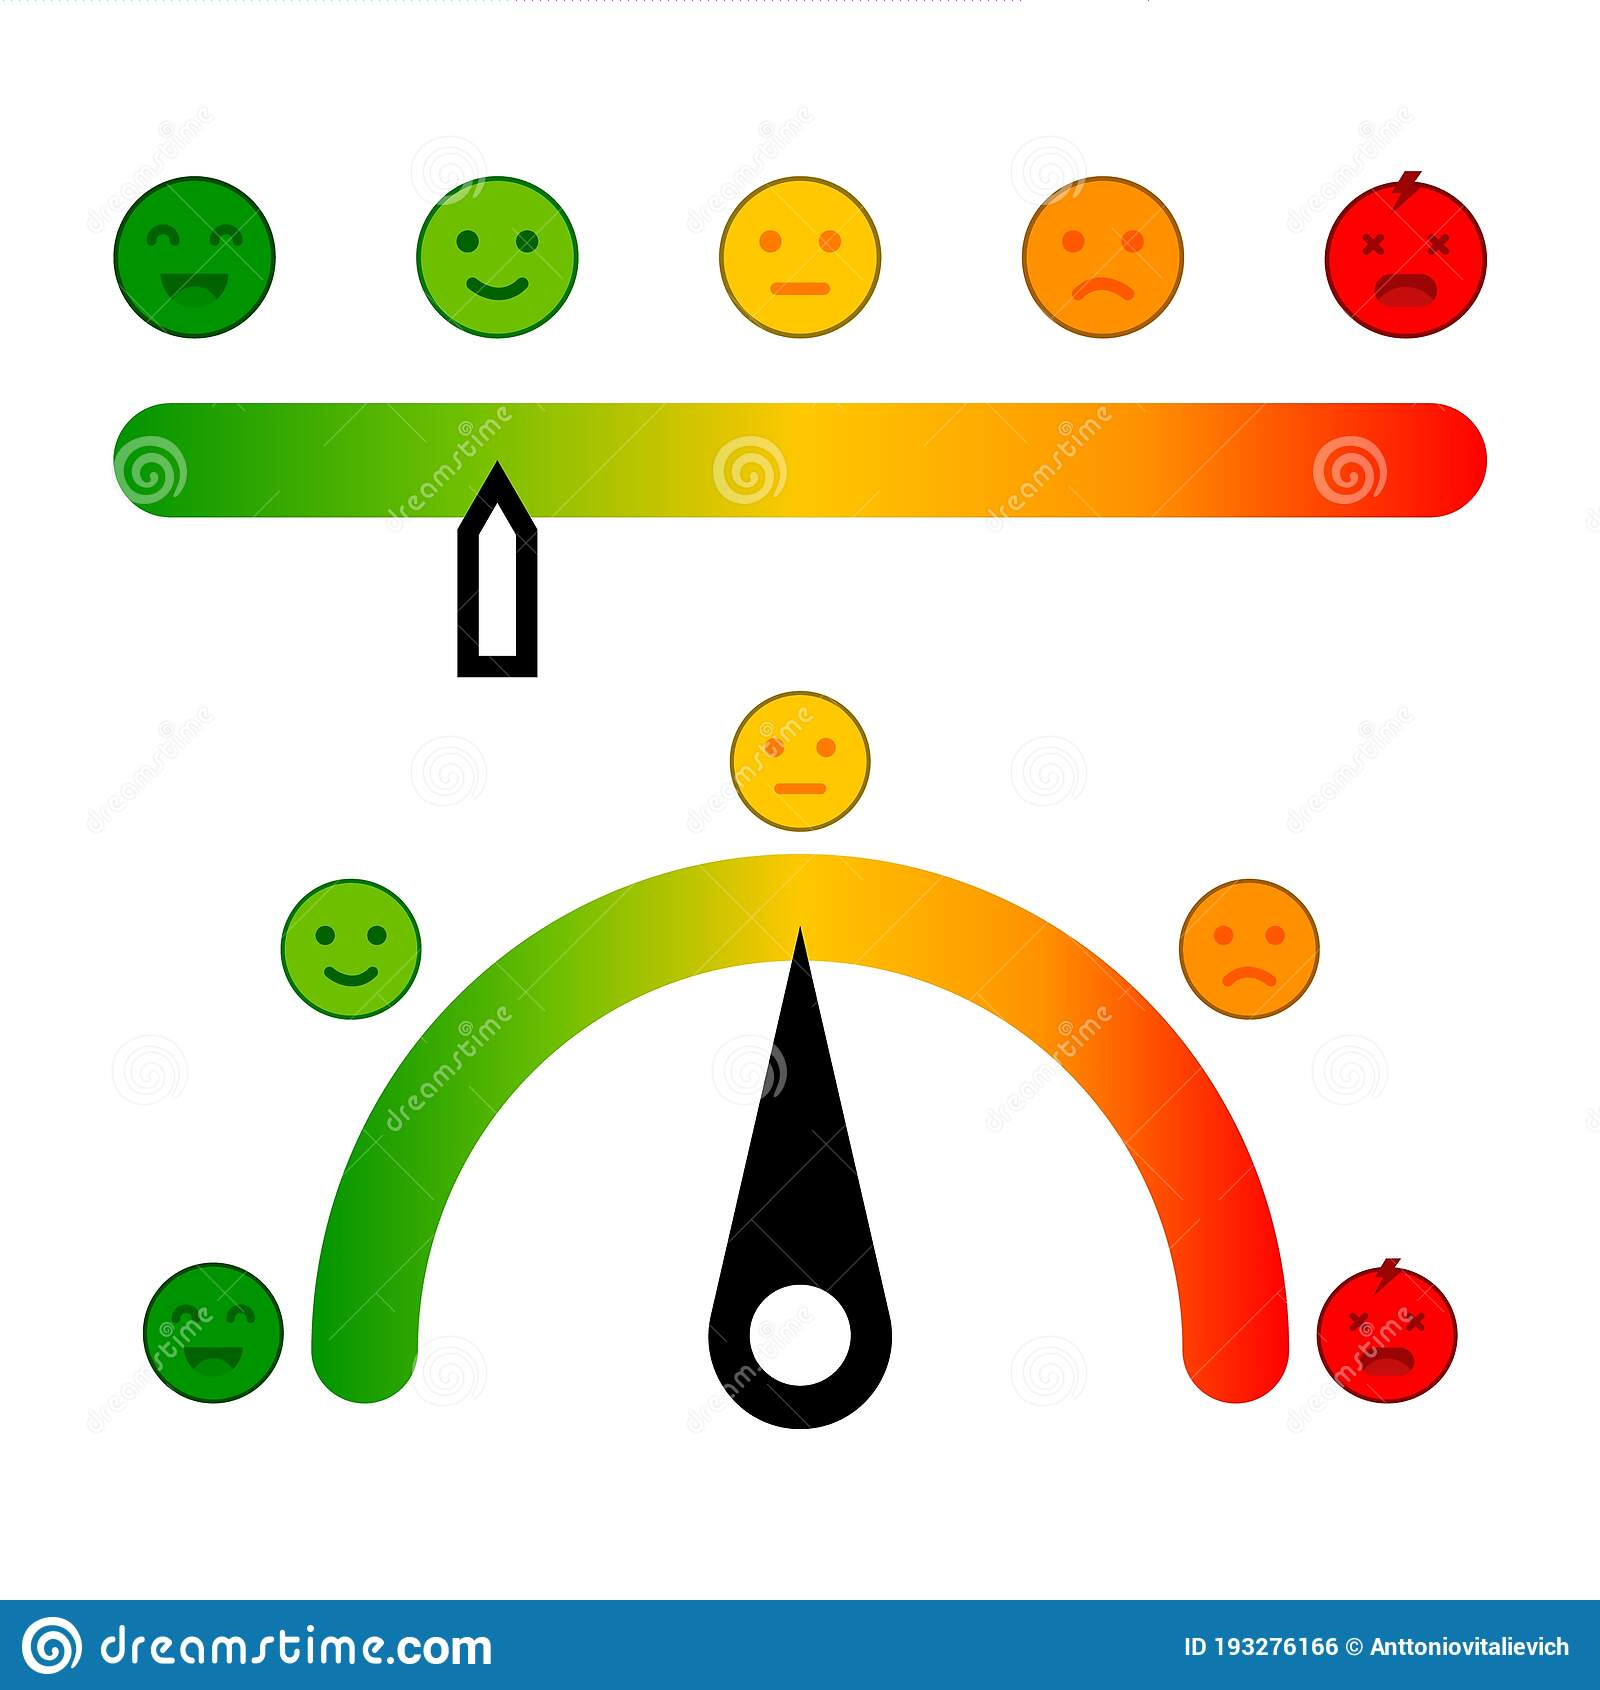 Color Scale With Arrow Set Scale Different Emotions Art Design From Red To Green Progress Bar Template Stock Vector Illustration Of Power Diagram 193276166